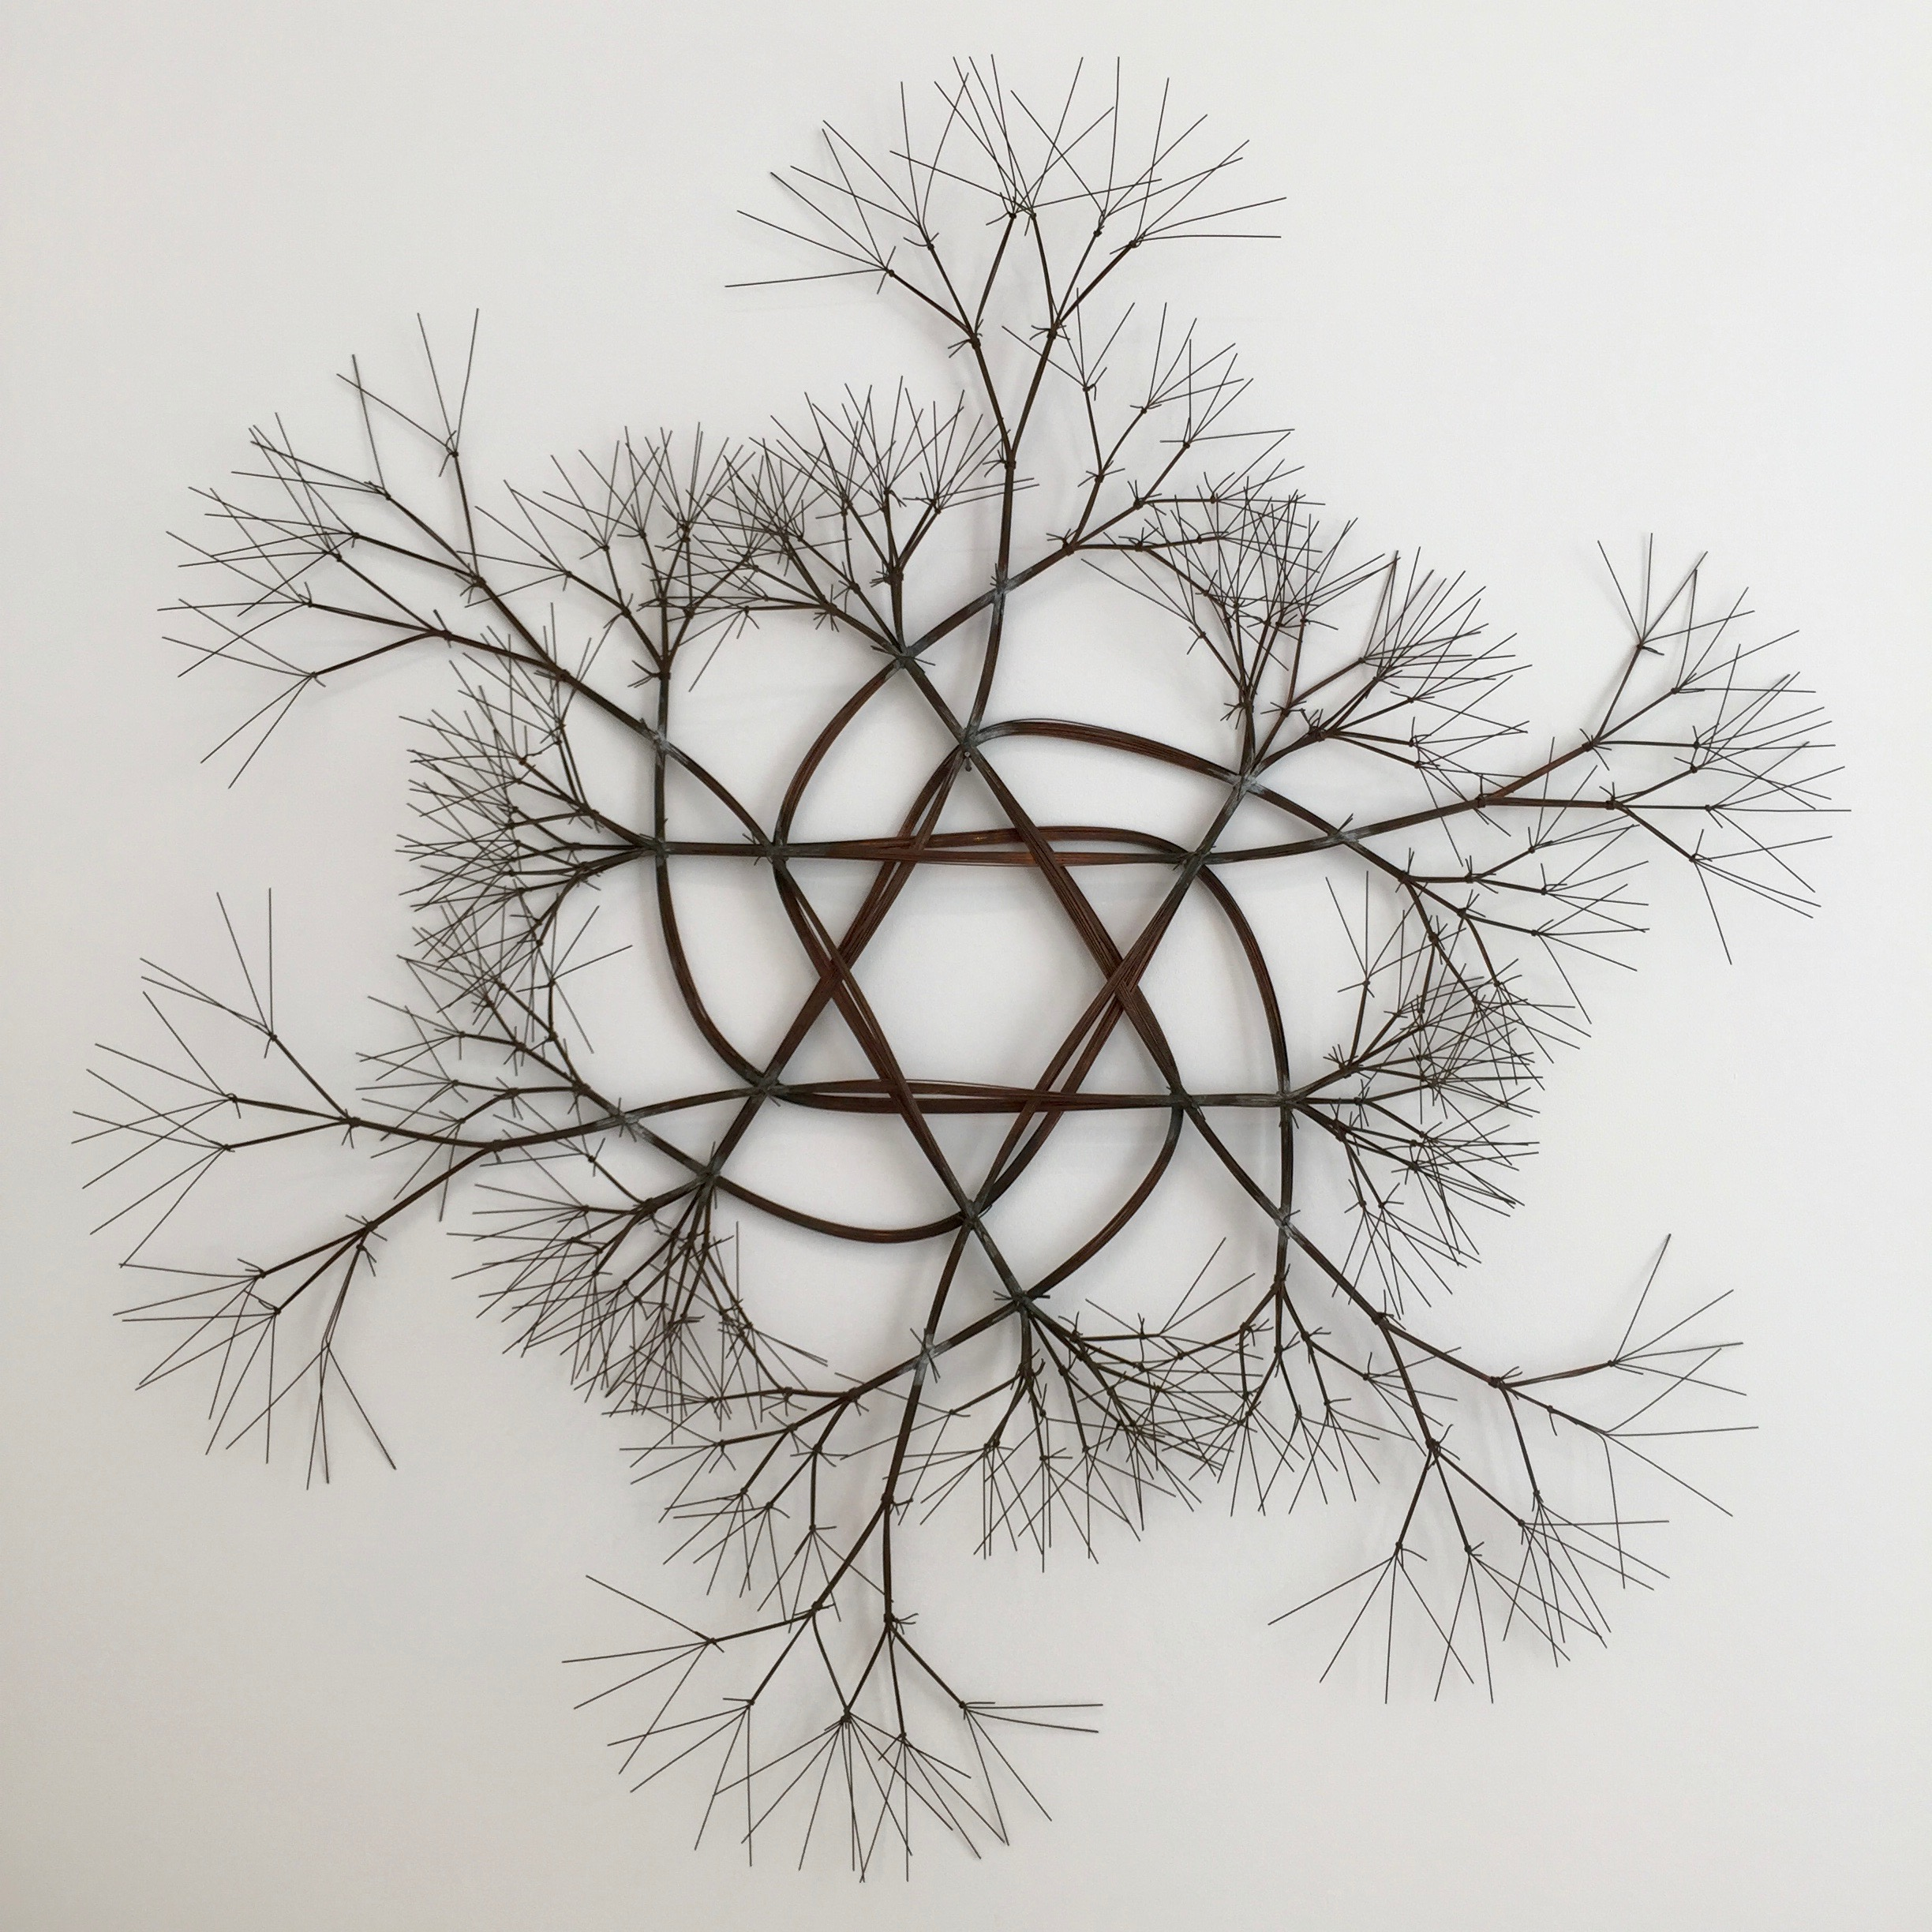 File:Ruth Asawa, Untitled (S.383, Wall-Mounted Tied Wire, Open ...